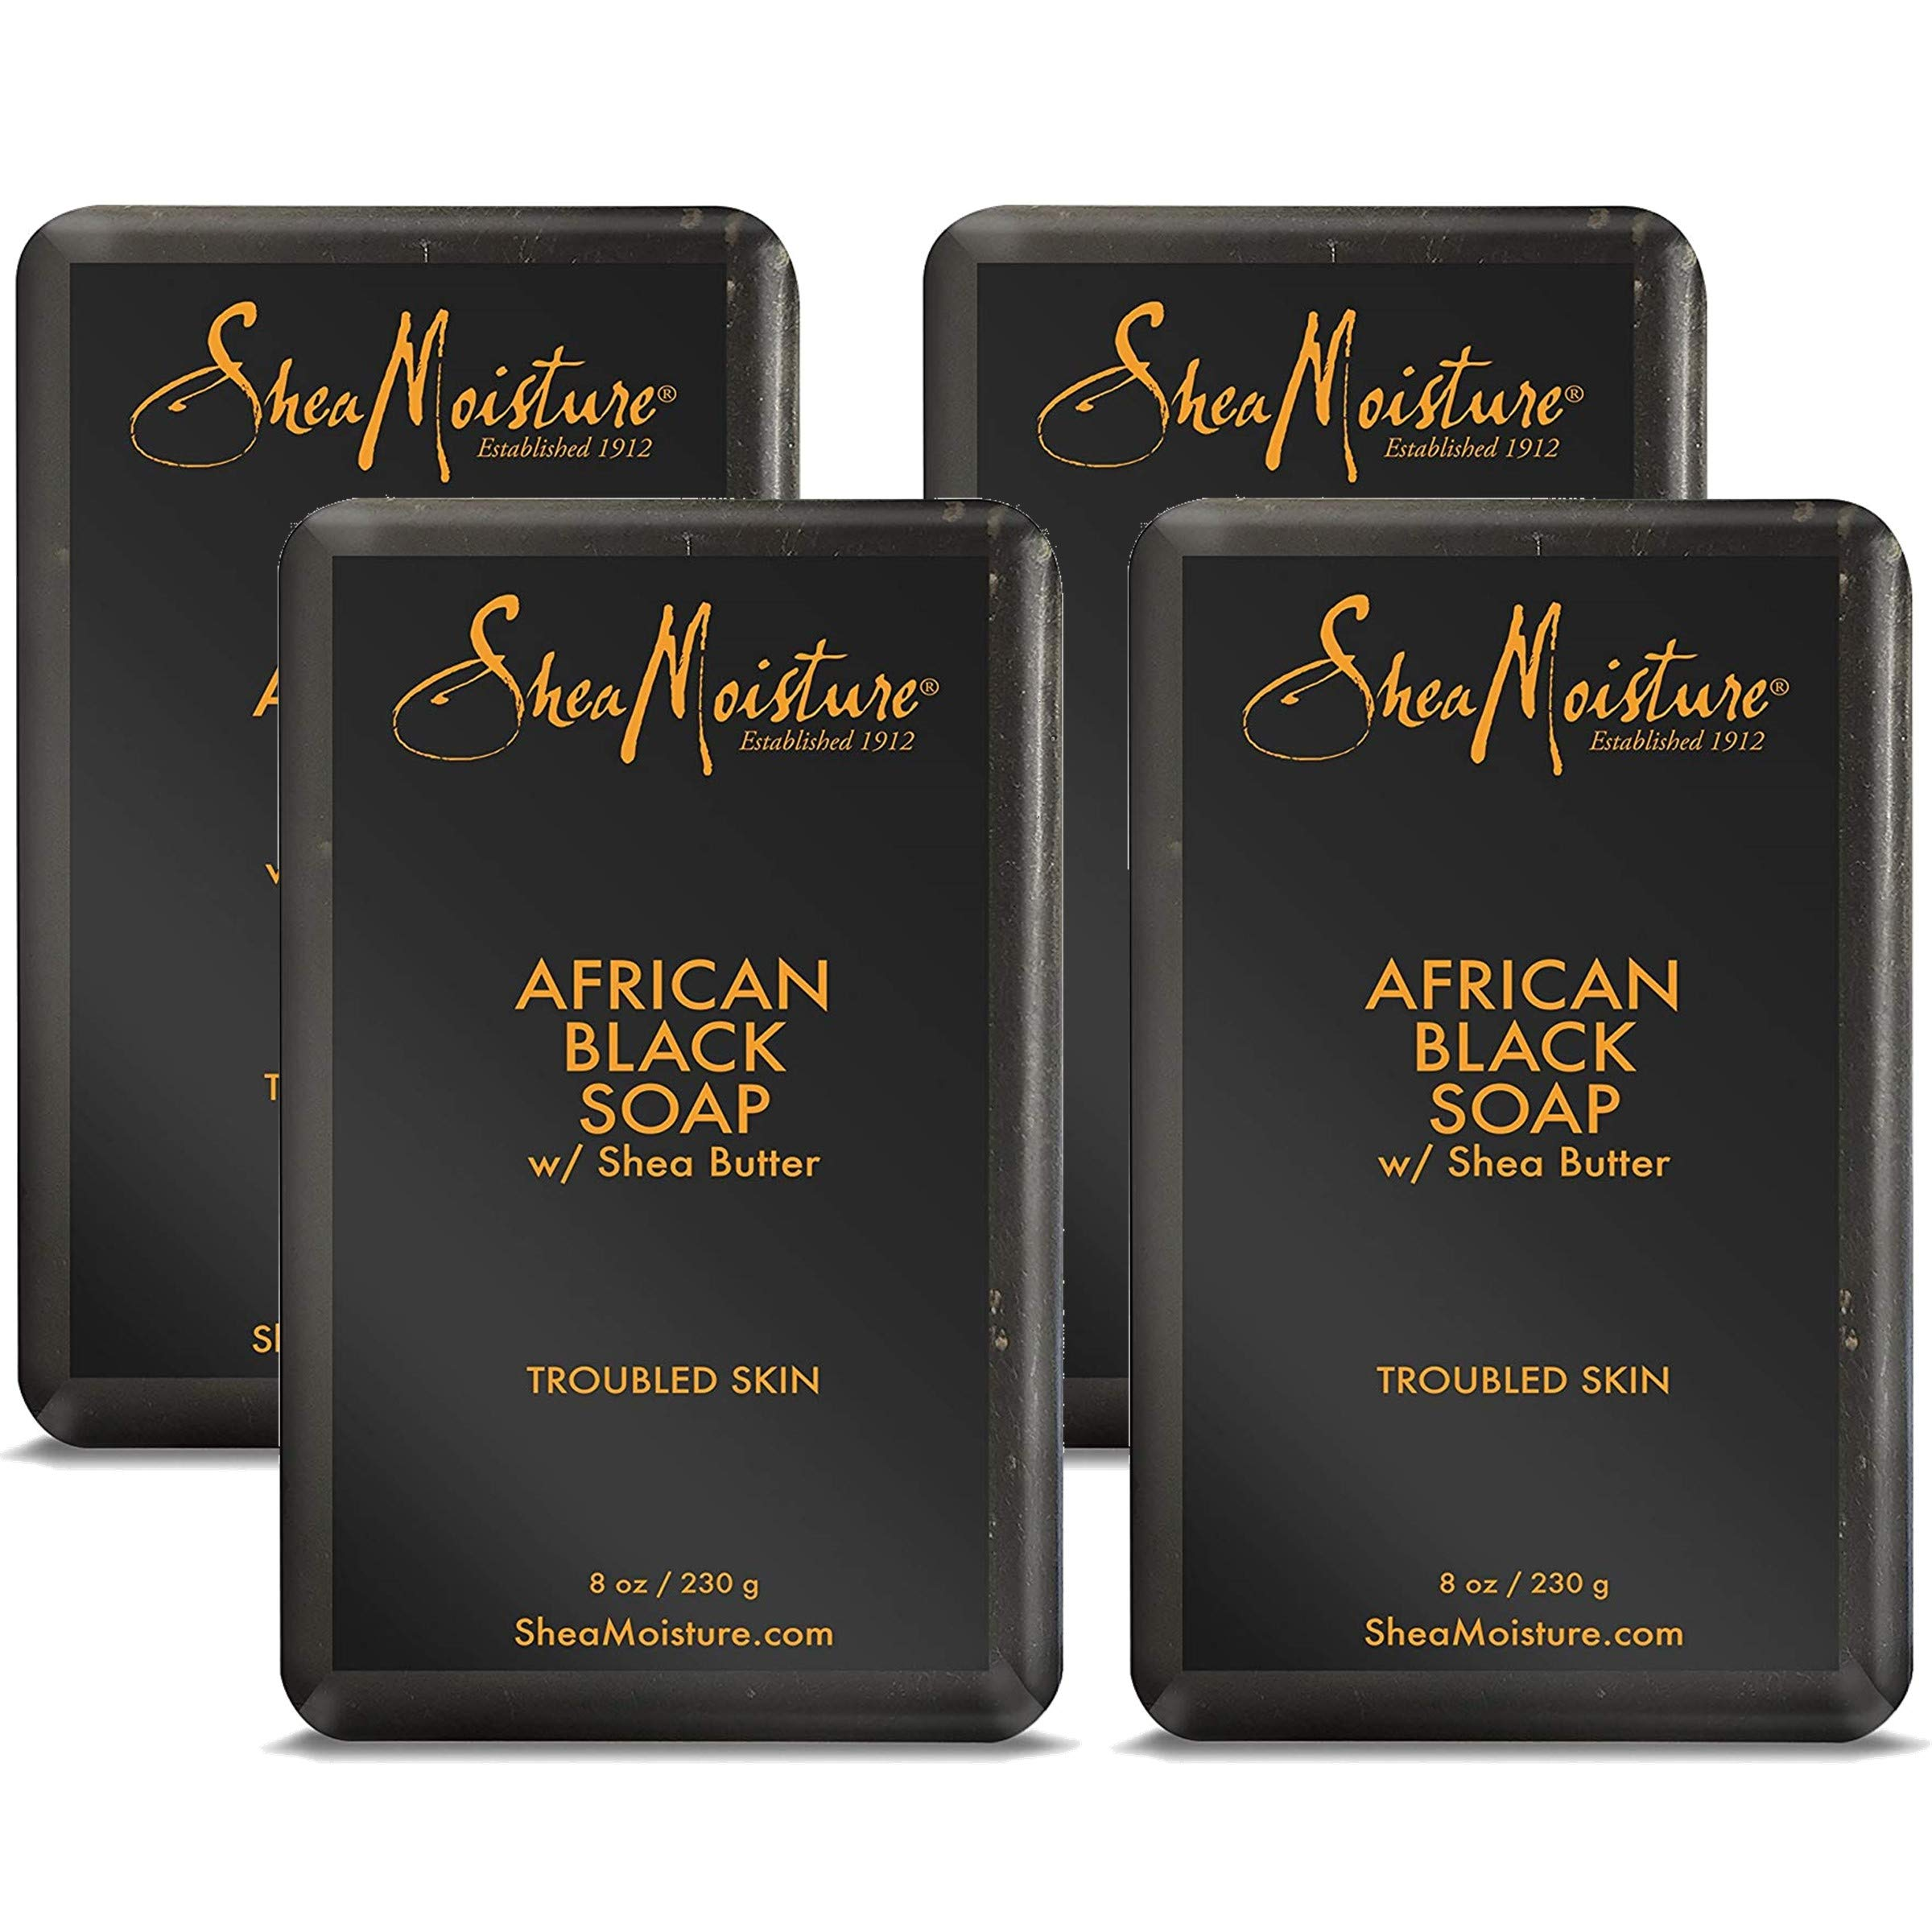 SheaMoisture African Black Soap, 8 Ounces, Pack of 4 by Shea Moisture